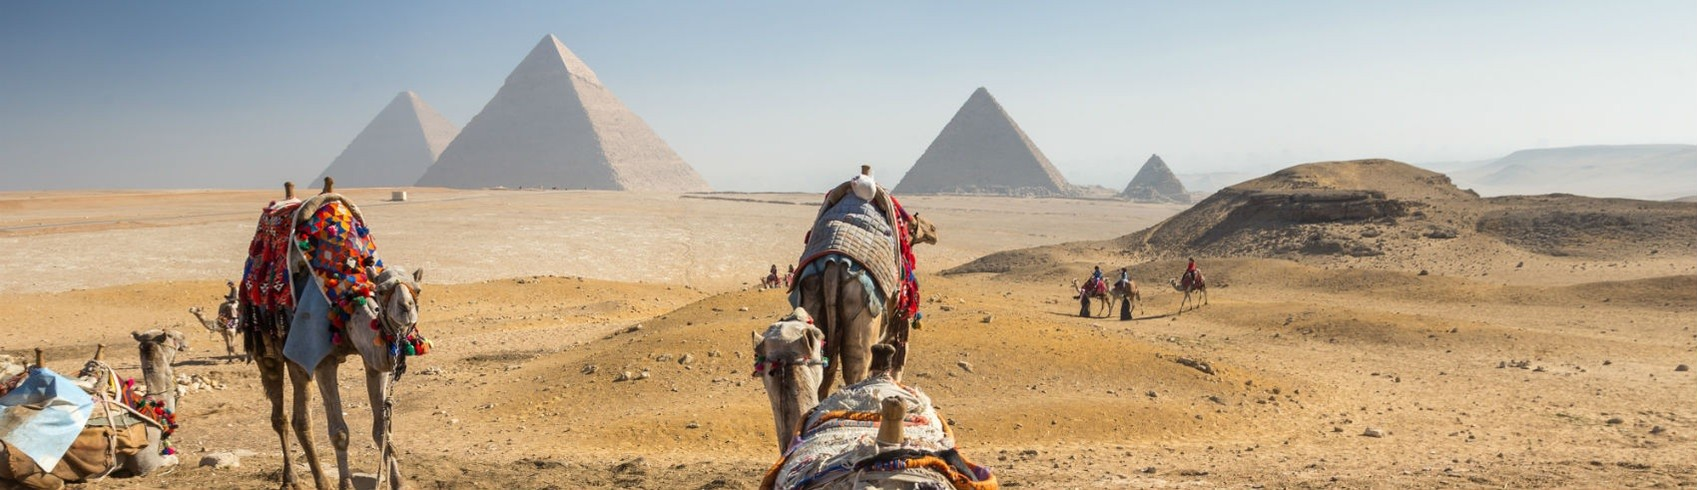 EGYPT FAMILY TOURS | EGYPT US TOURS